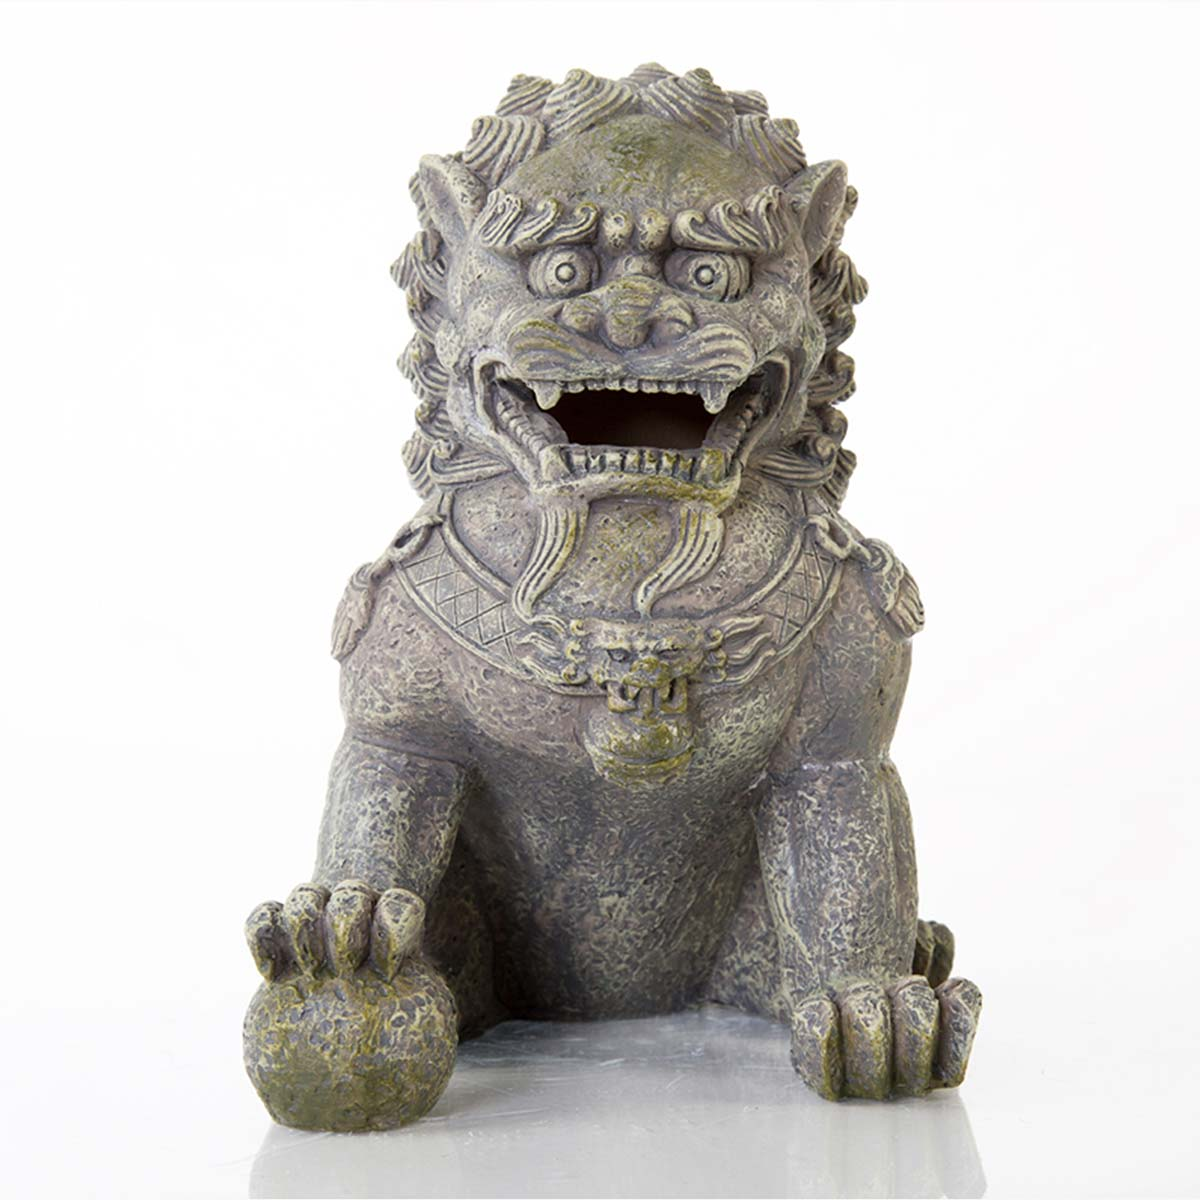 Biobubble Bio-60266300 Decorative Temple Guardian